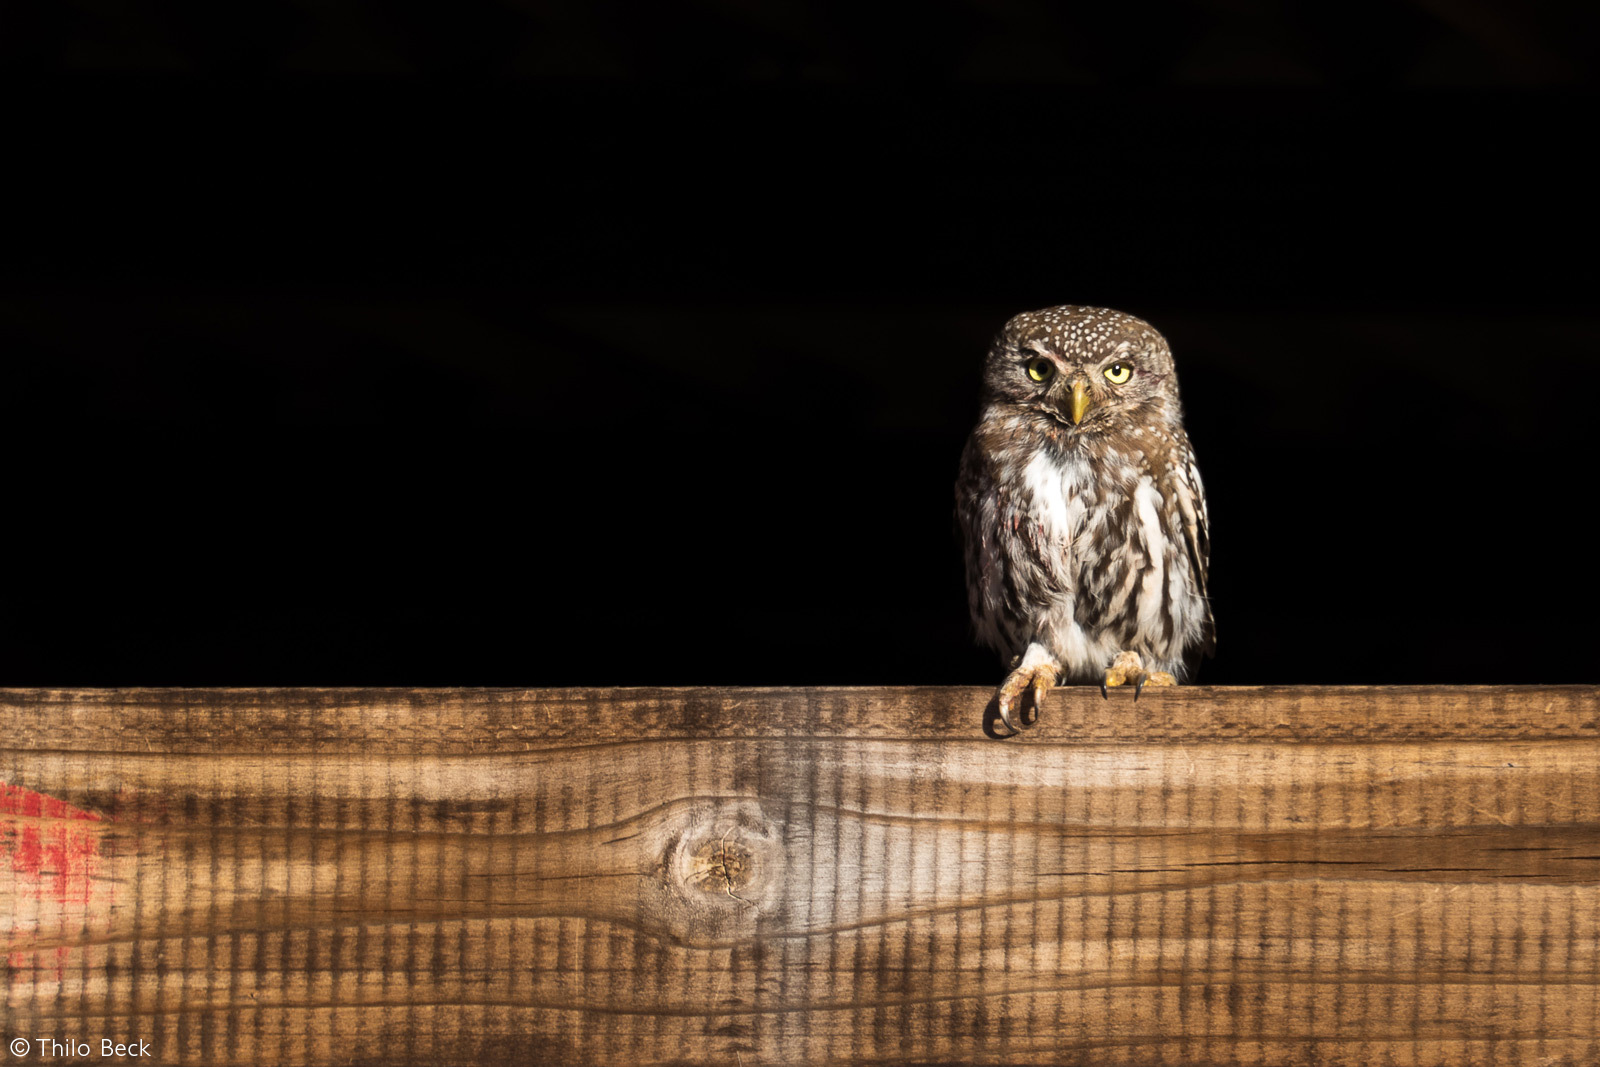 A pearl-spotted owlet enjoys the last of the sun's rays while looking out for a potential snack. It is sitting on a wooden board at Dedeben Research Center in Tswalu Kalahari Reserve, South Africa © Thilo Beck